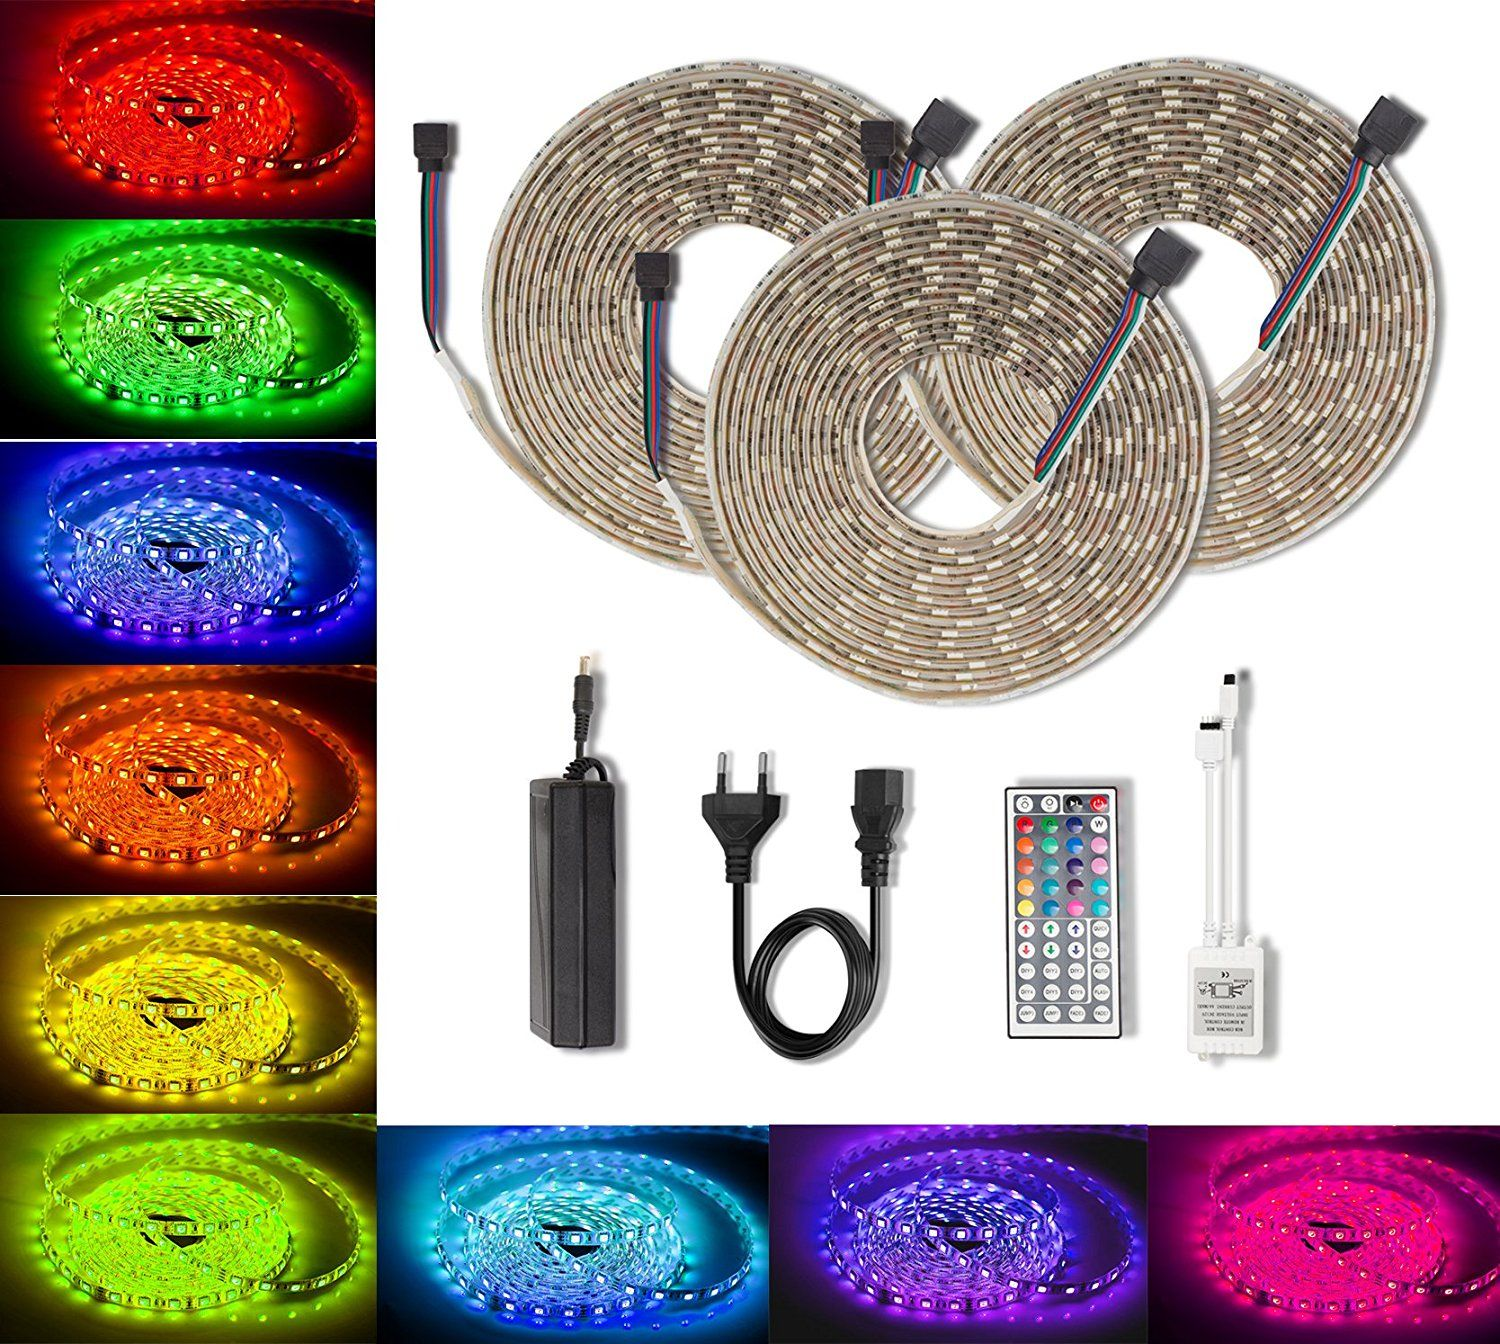 Color Changing Rope Lights Inspiration Quntis Led Strips Light Rgb High Density Dimmable 164Ft 5M Rgb Smd Inspiration Design